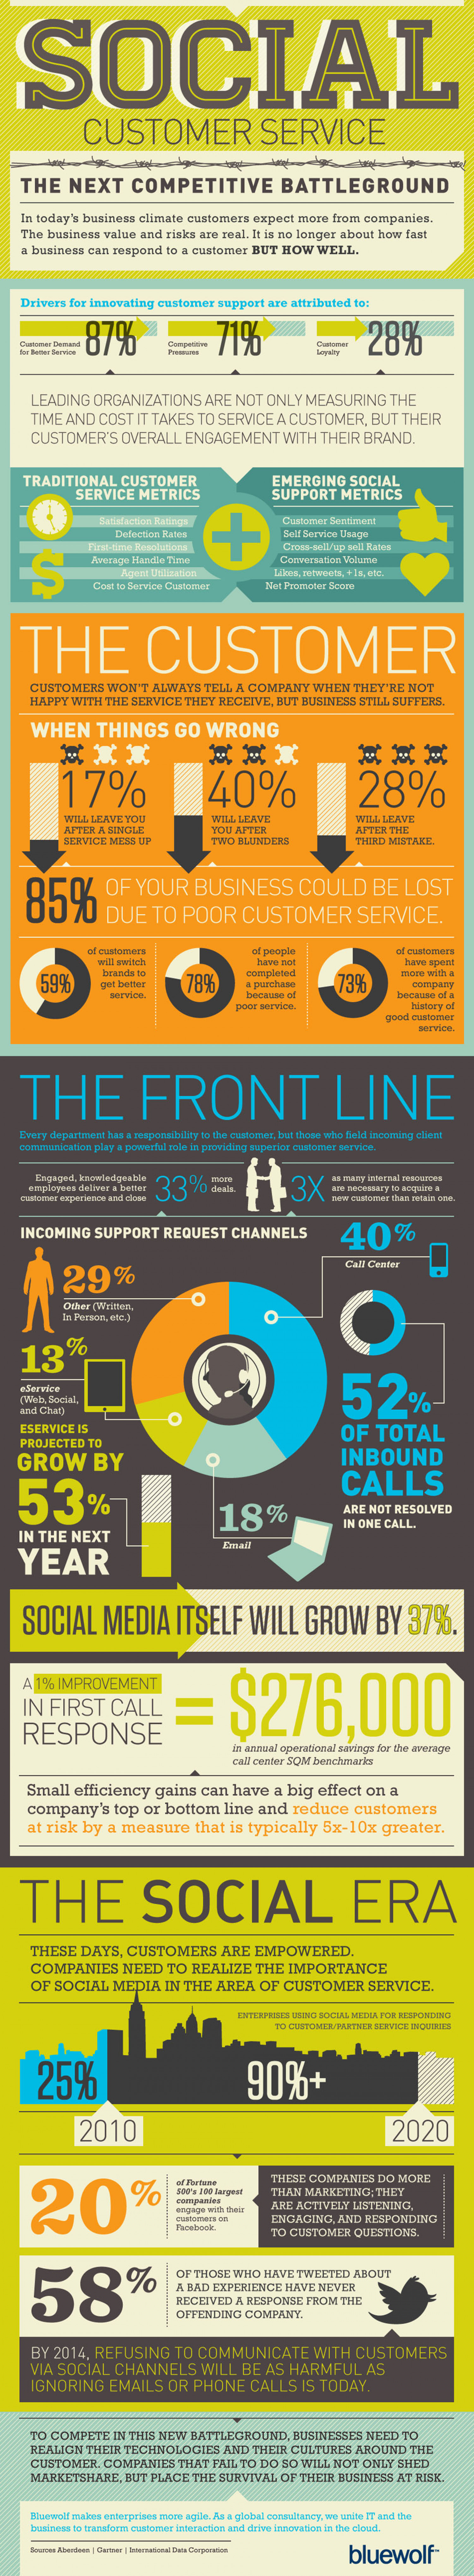 Social Customer Service Infographic